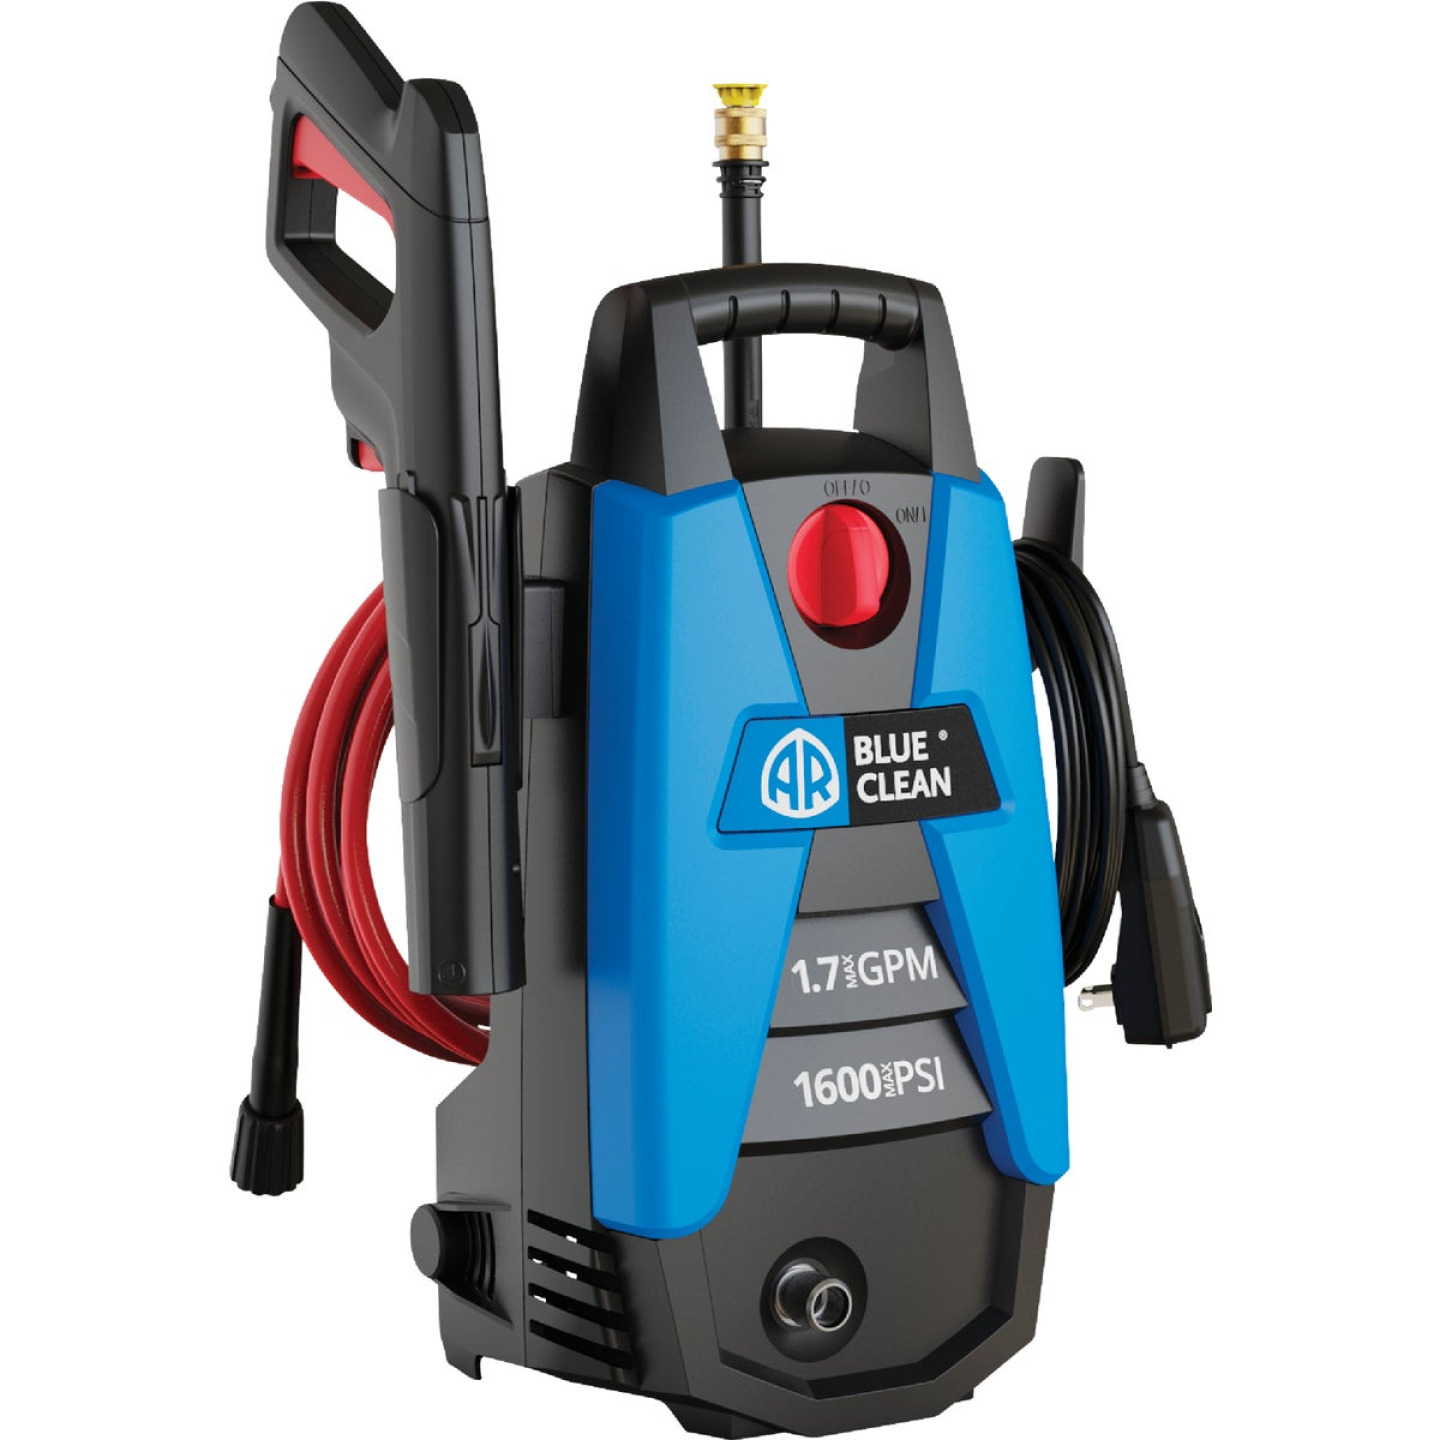 Blue Clean 1600 psi 1.7 gpm Cold Water Electric Pressure Washer Image 1